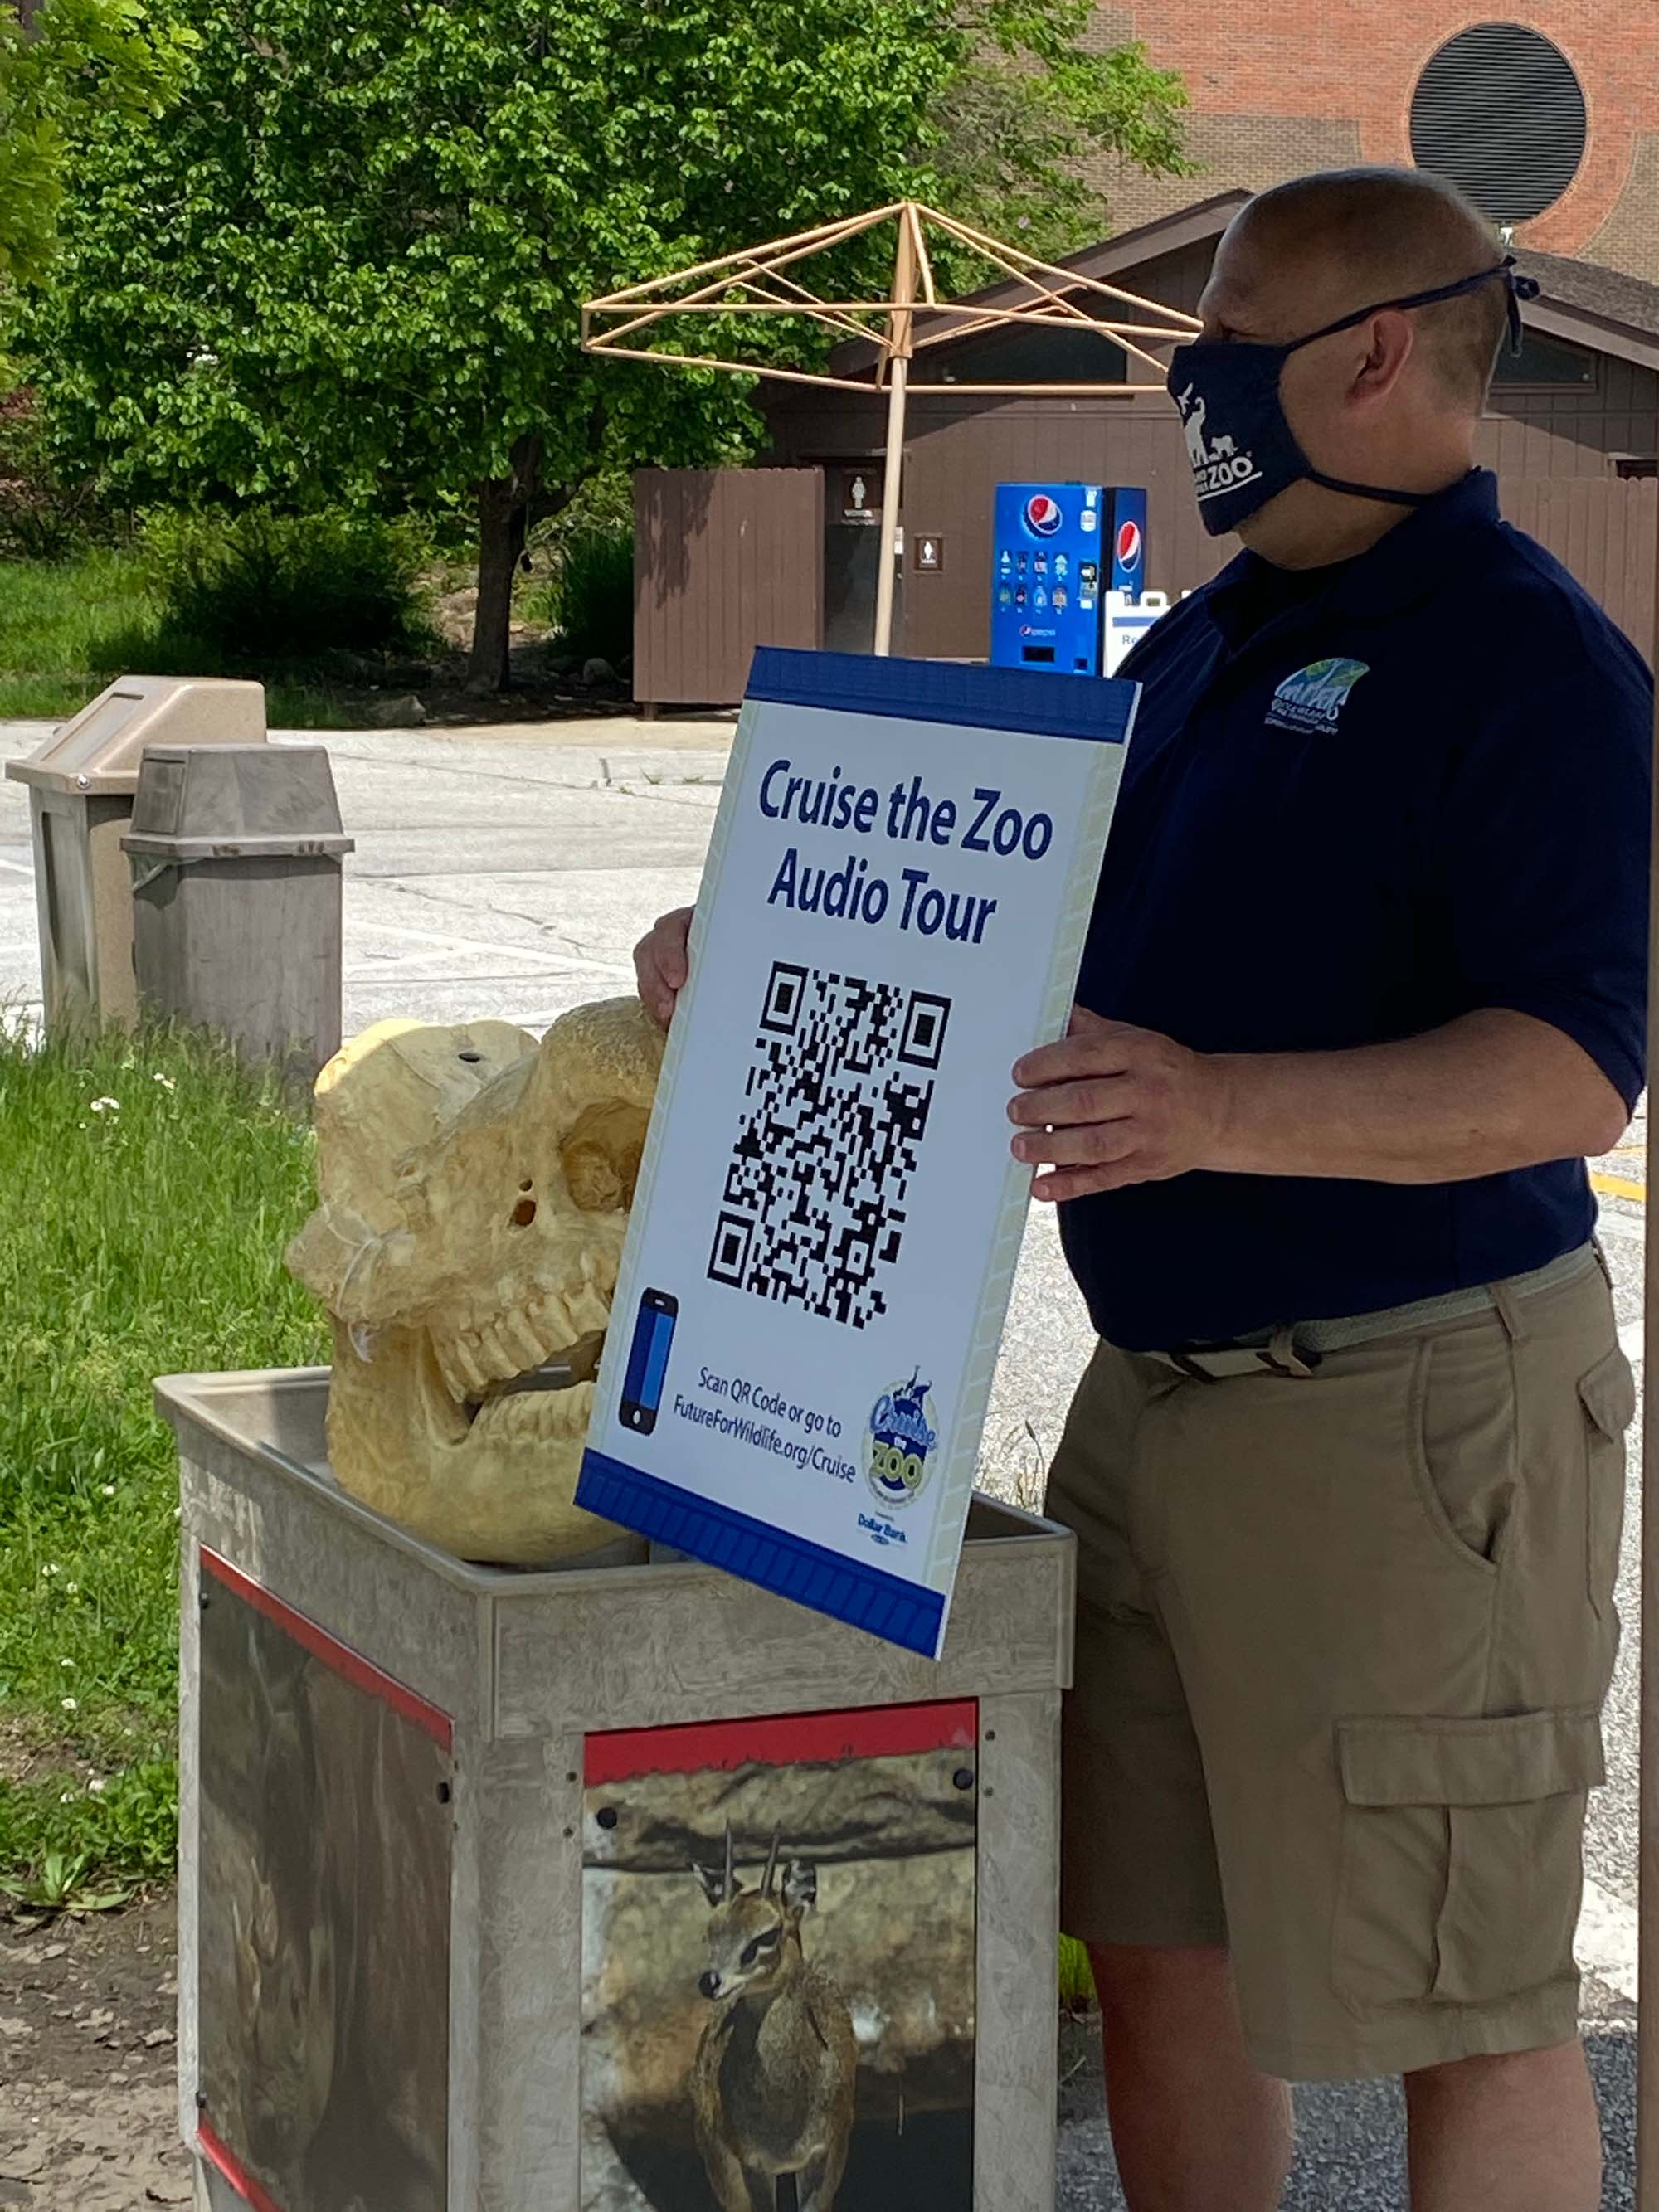 In lieu of personal interpreters Jim Nemet, Education Manager at Cleveland Metroparks Zoo, orients guests in cars to the Cruise the Zoo Audio Tour.